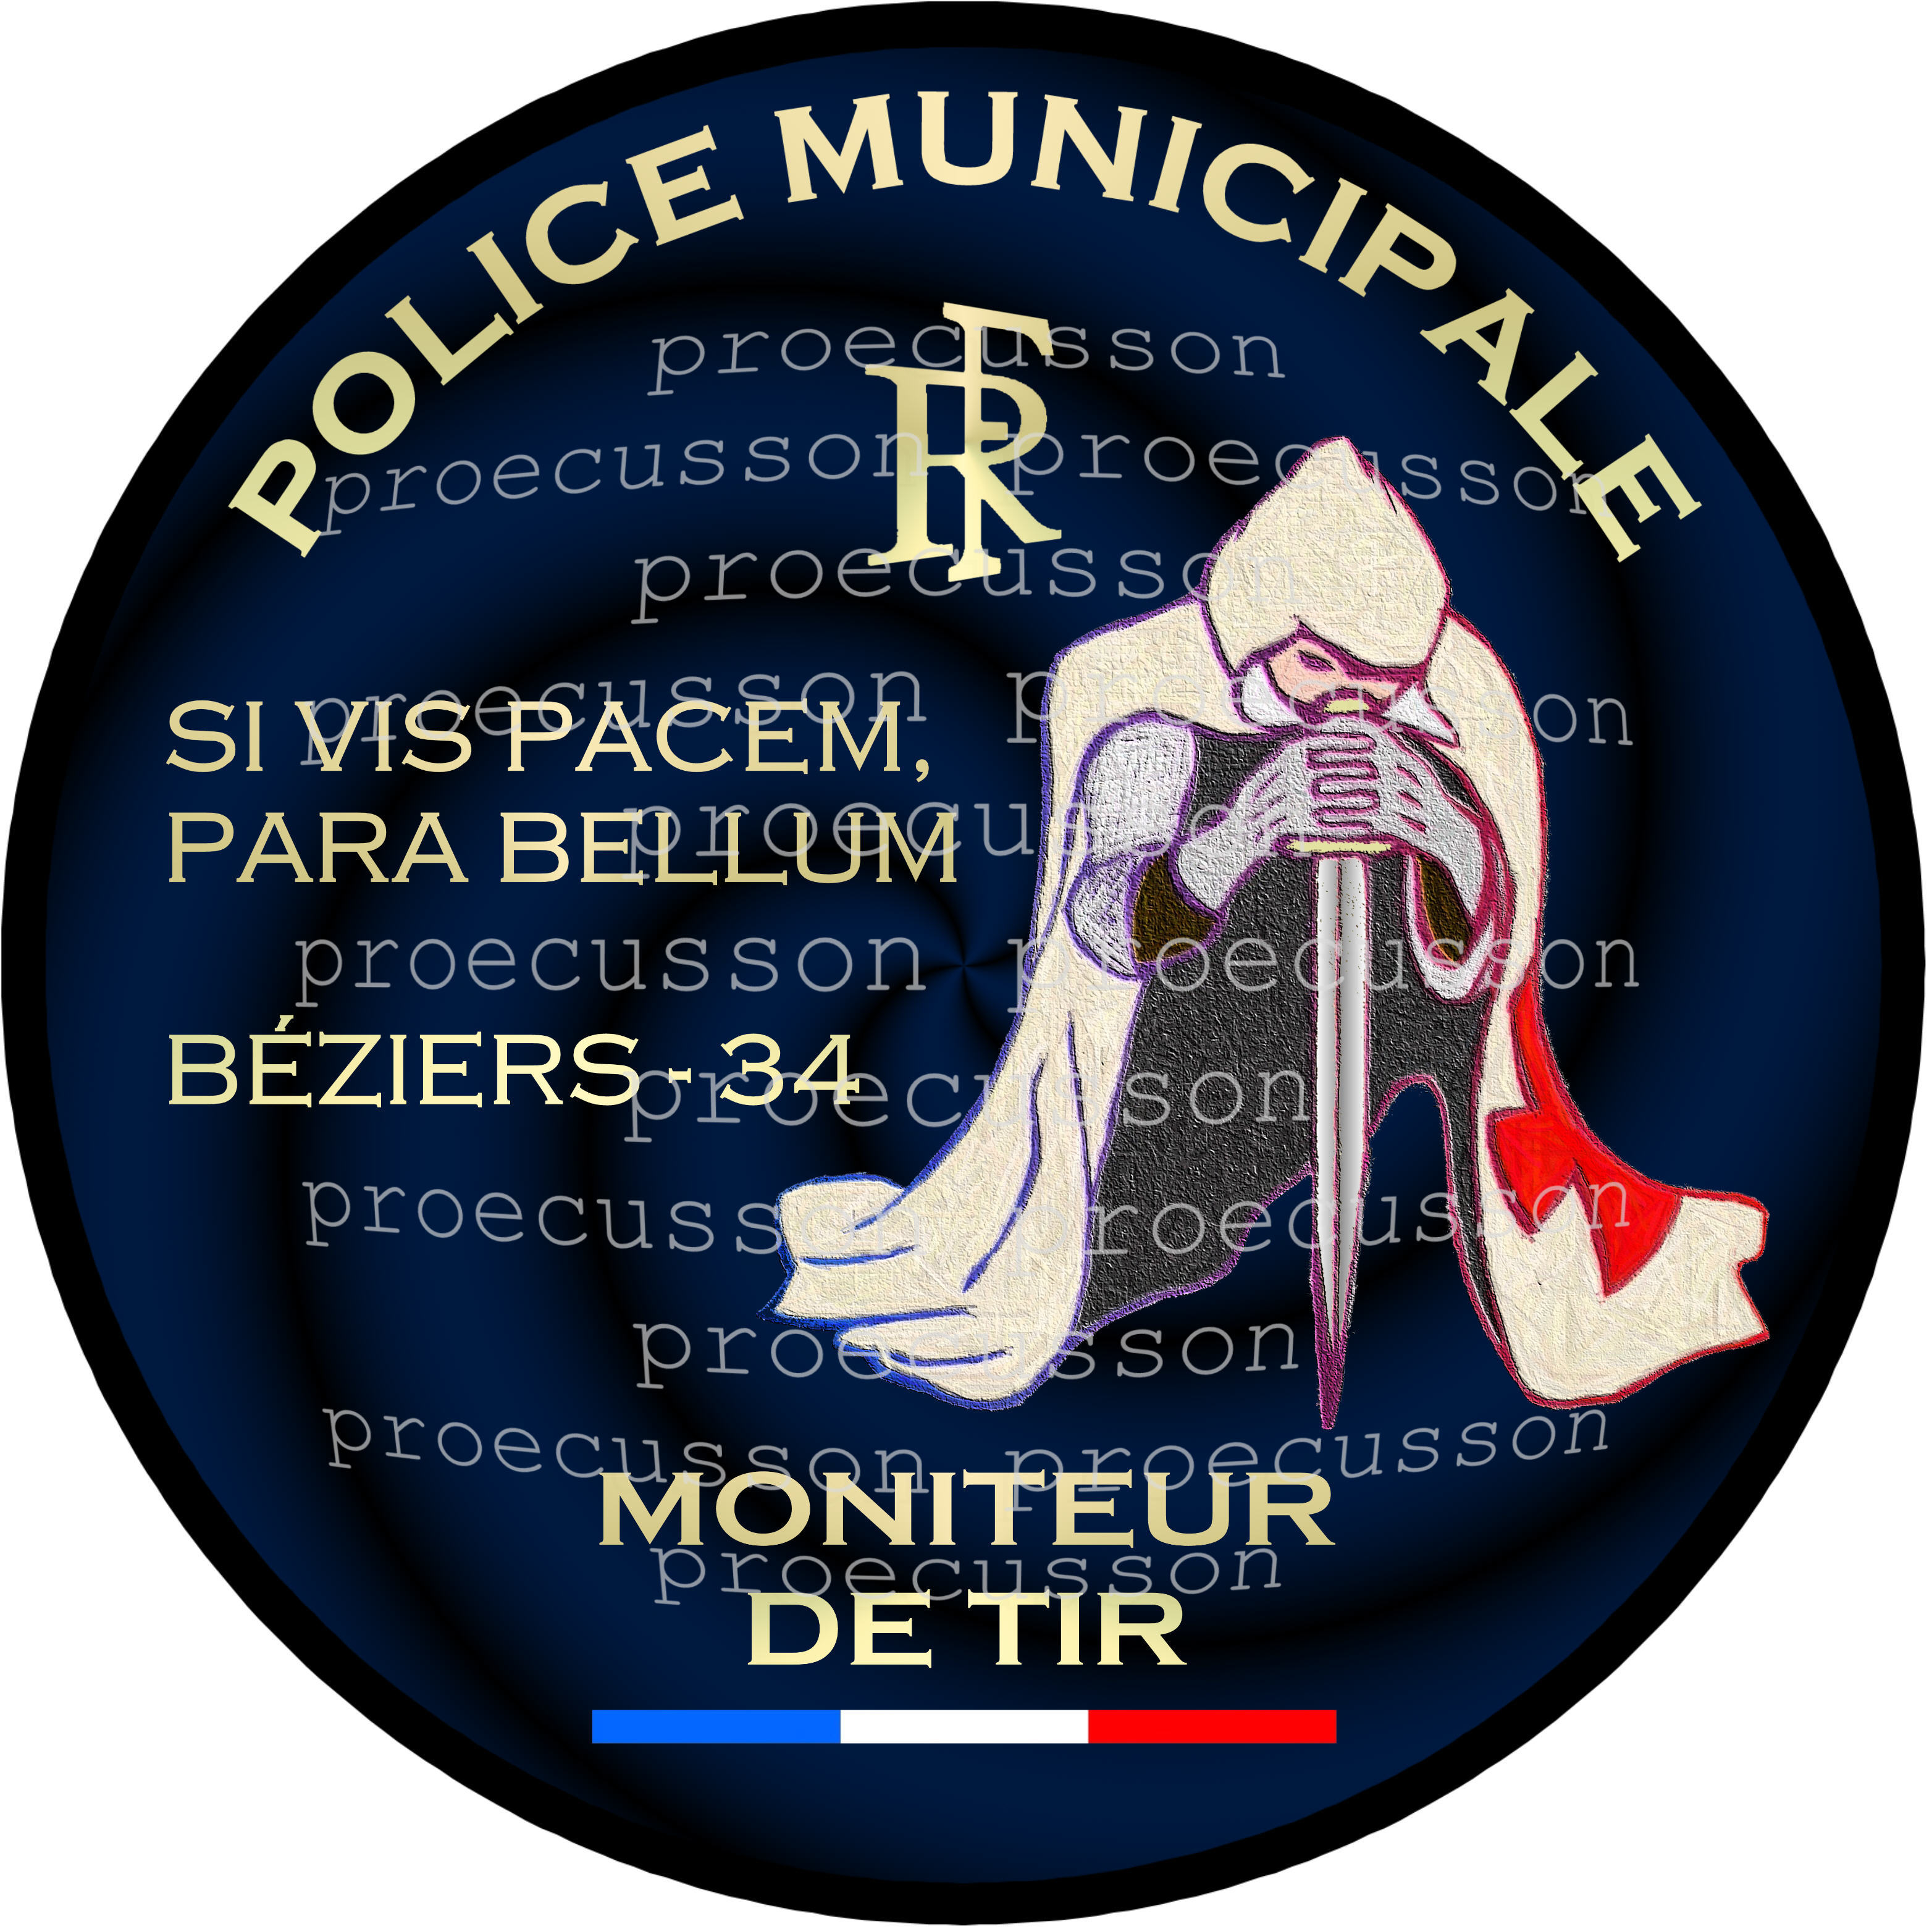 POLICE MUNICIPALE BÉZIERS MMA